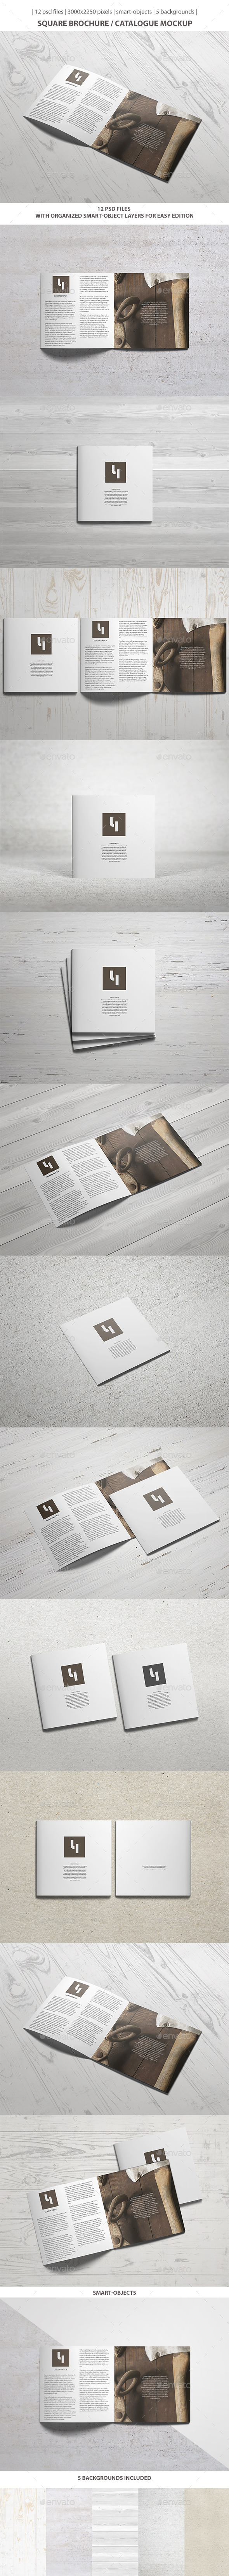 GraphicRiver Square Brochure Catalogue Mockup 9858532